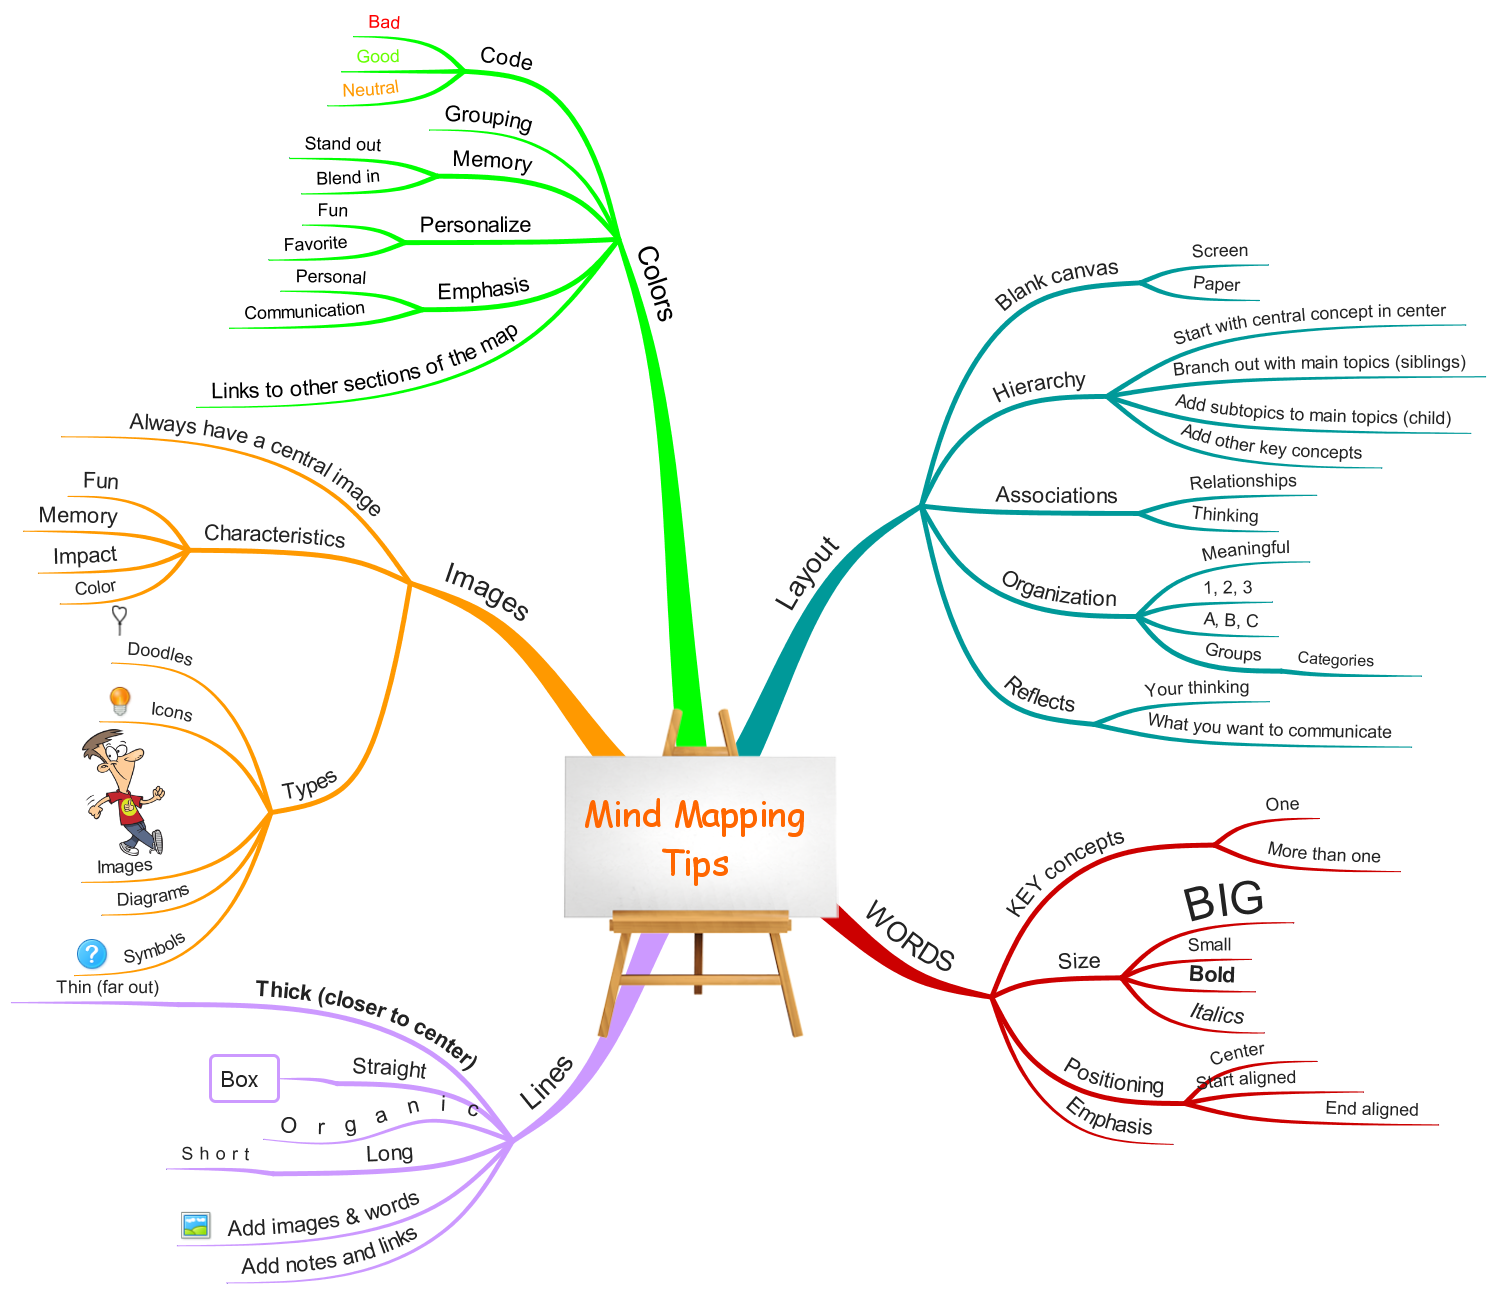 Mind Mapping Tips map